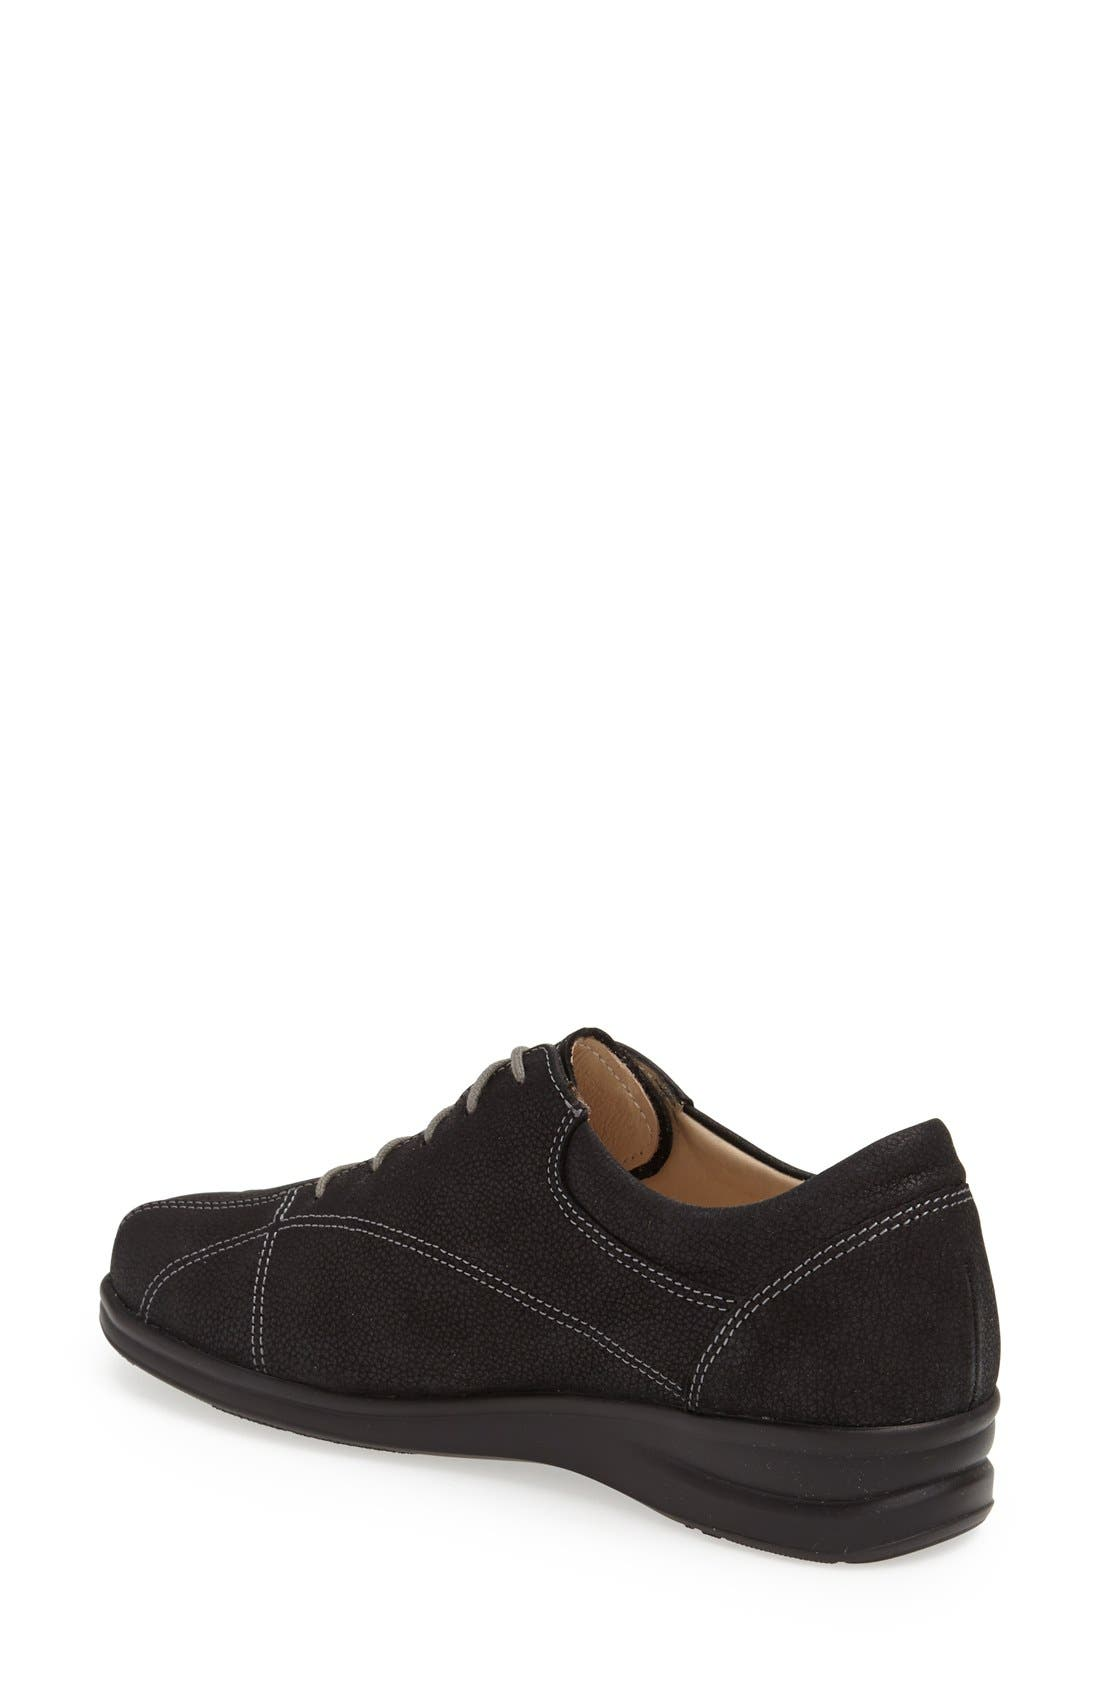 'Ariano' Leather Sneaker,                             Alternate thumbnail 2, color,                             BLACK